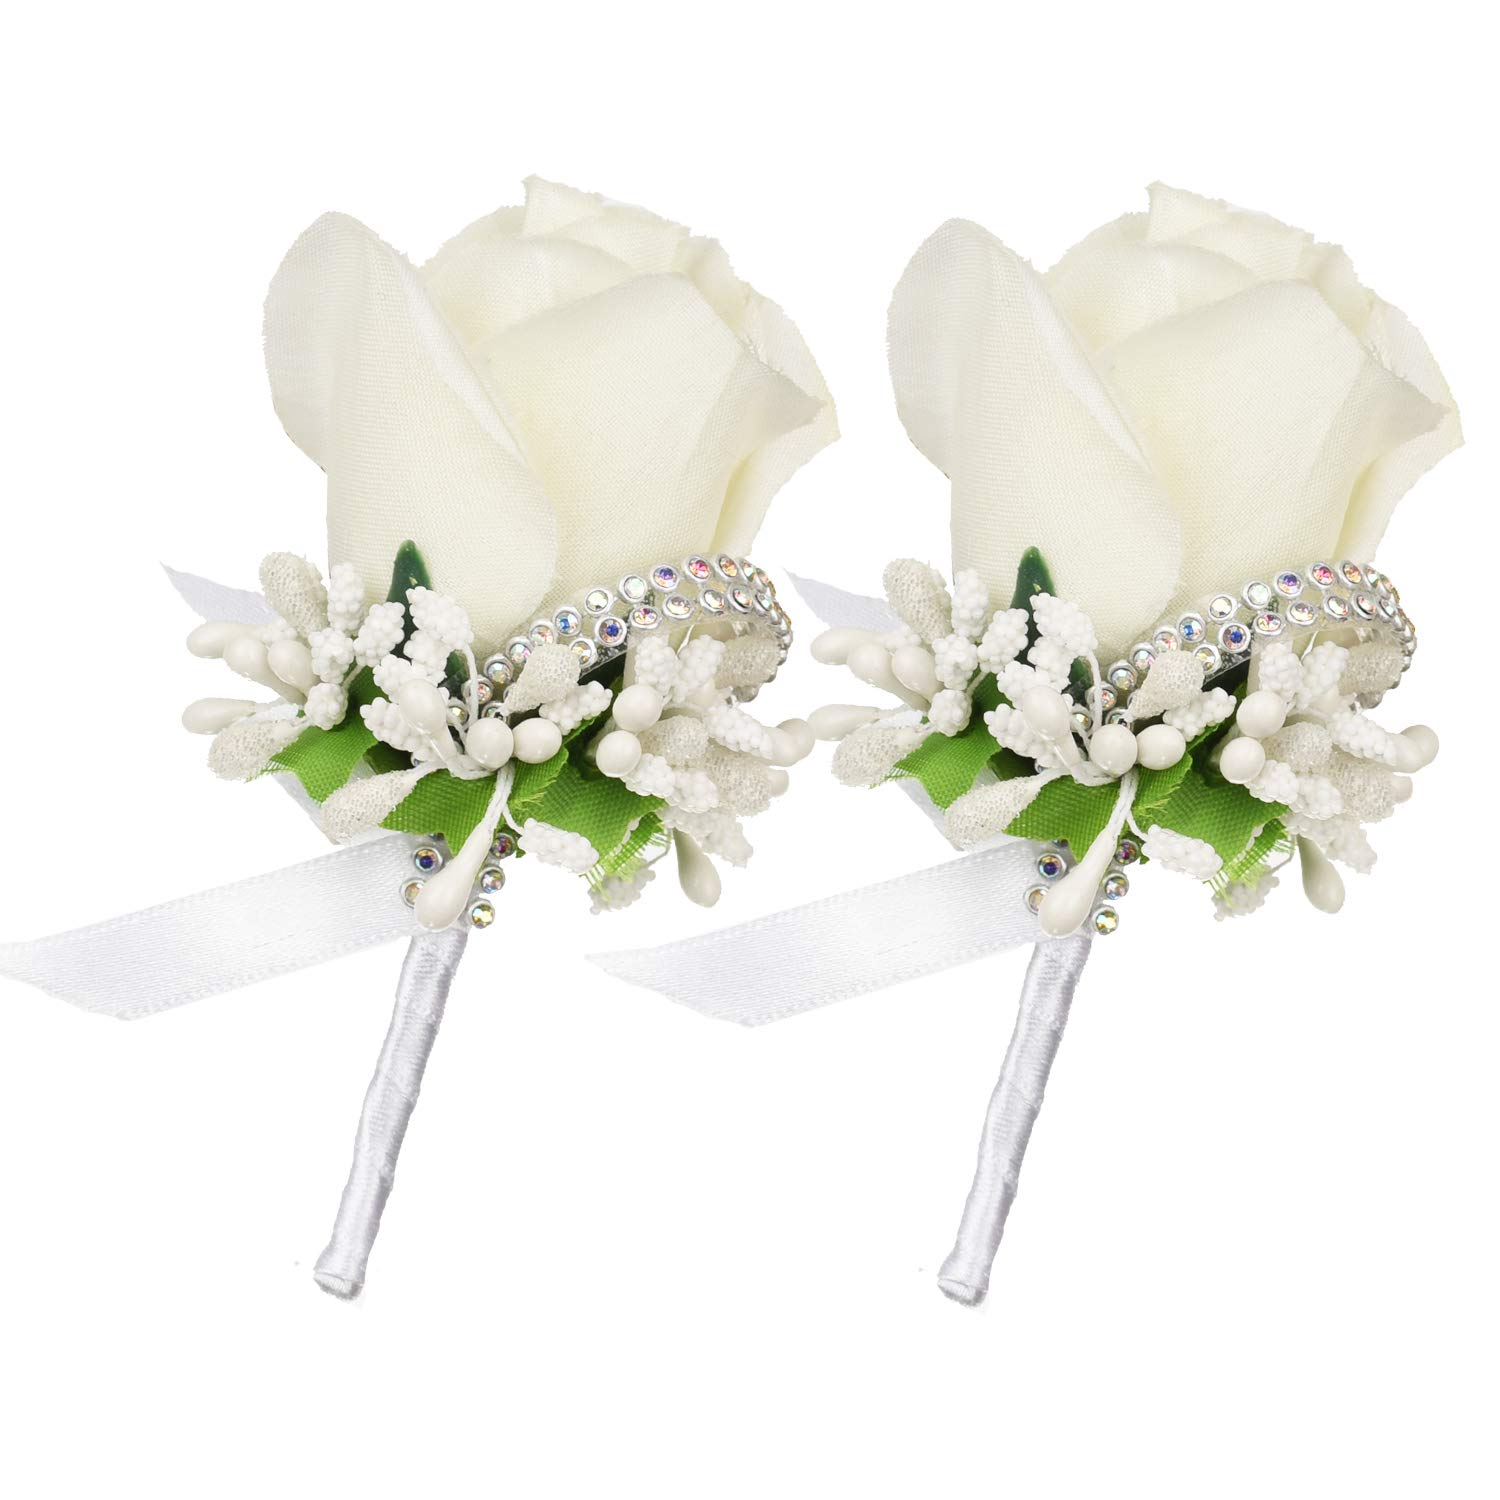 Coolmade 2Pcs Boutonniere Buttonholes Groom Groomsman Best Man Rose Wedding Flowers Accessories Prom Suit Decoration (Blue Rose)